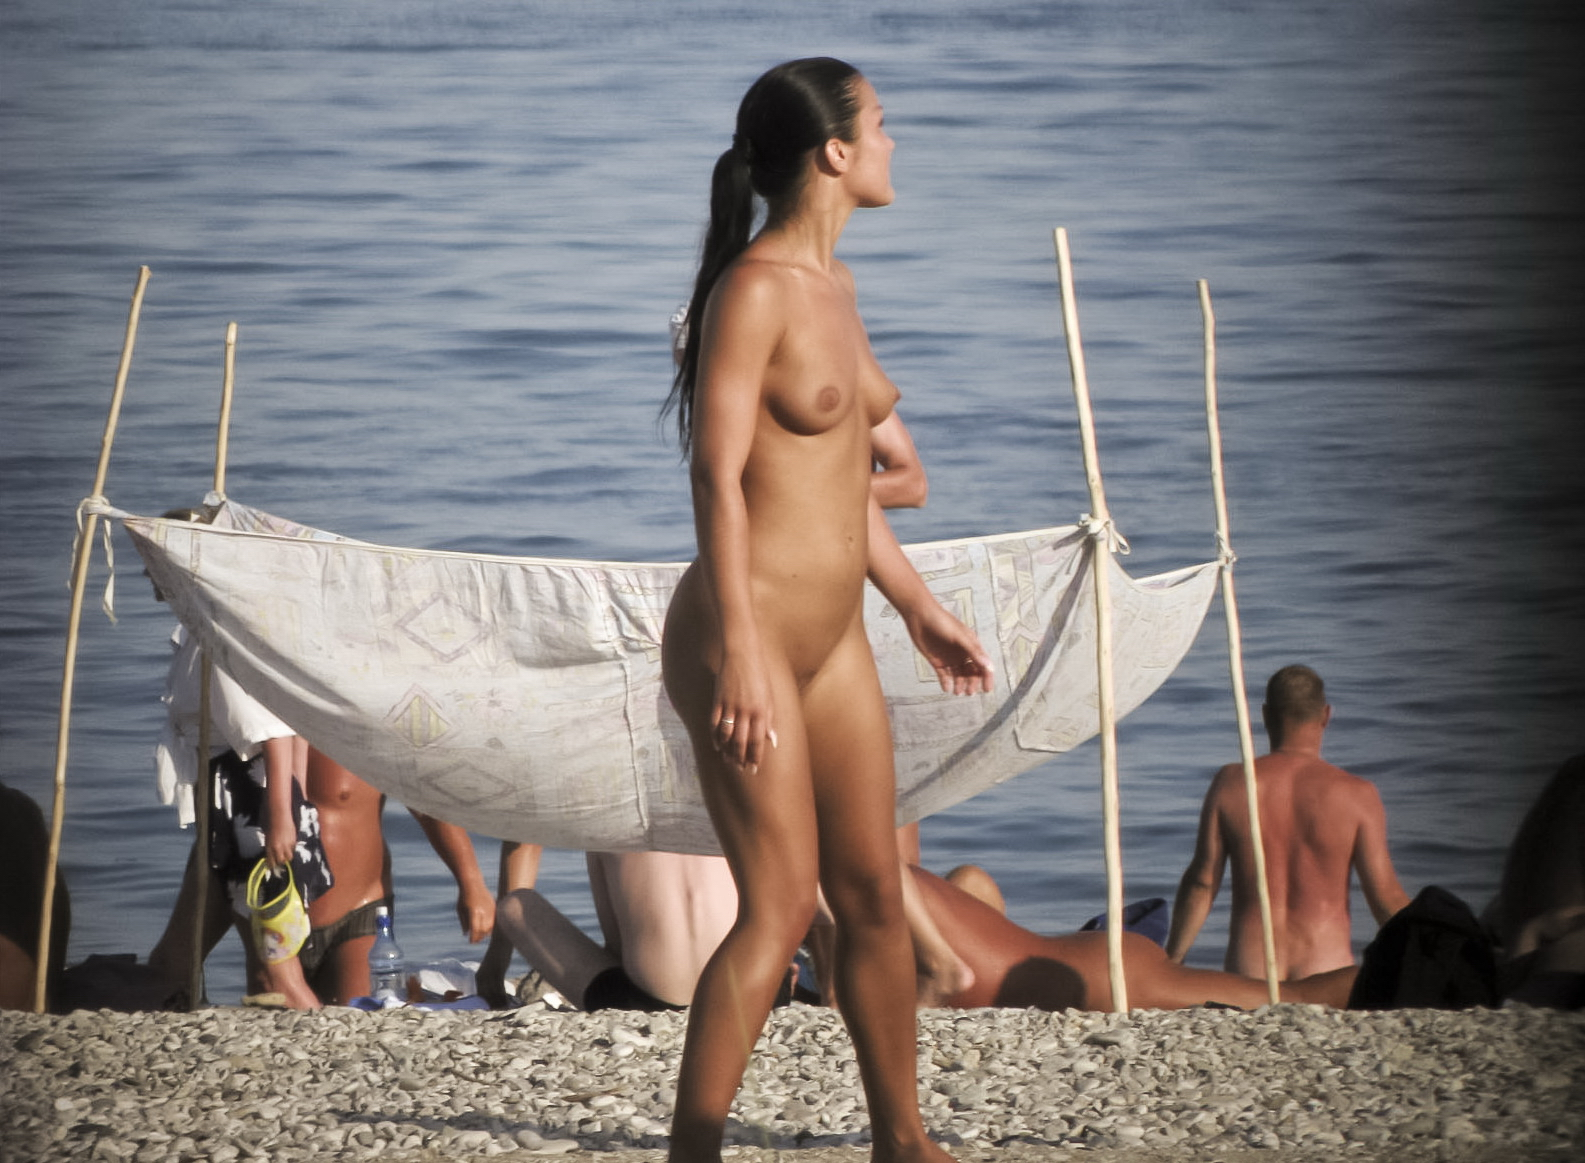 Think, Teen girls nude at beach will